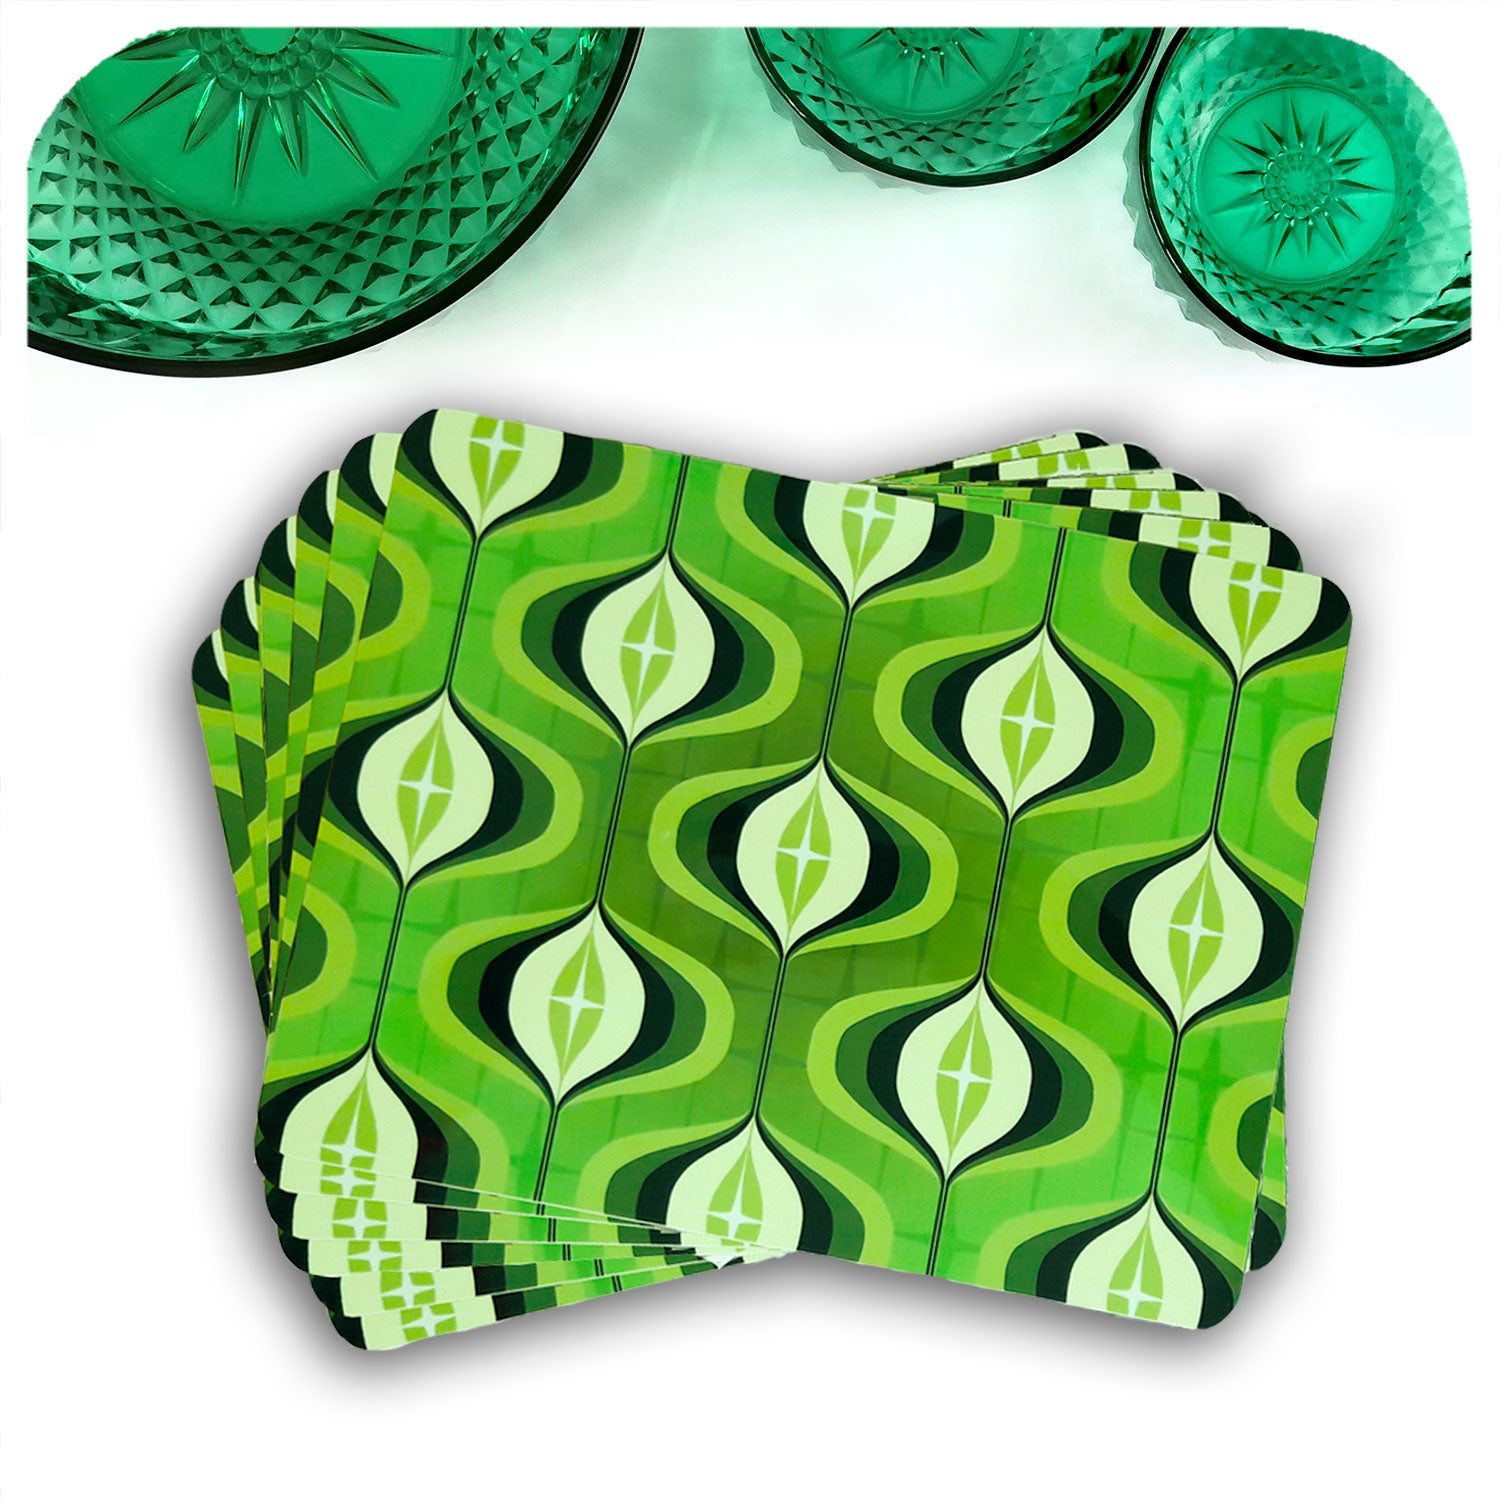 1970s Op Art Placemats in green, set of 6 in a fan with vintage bowls | The Inkabilly Emporium